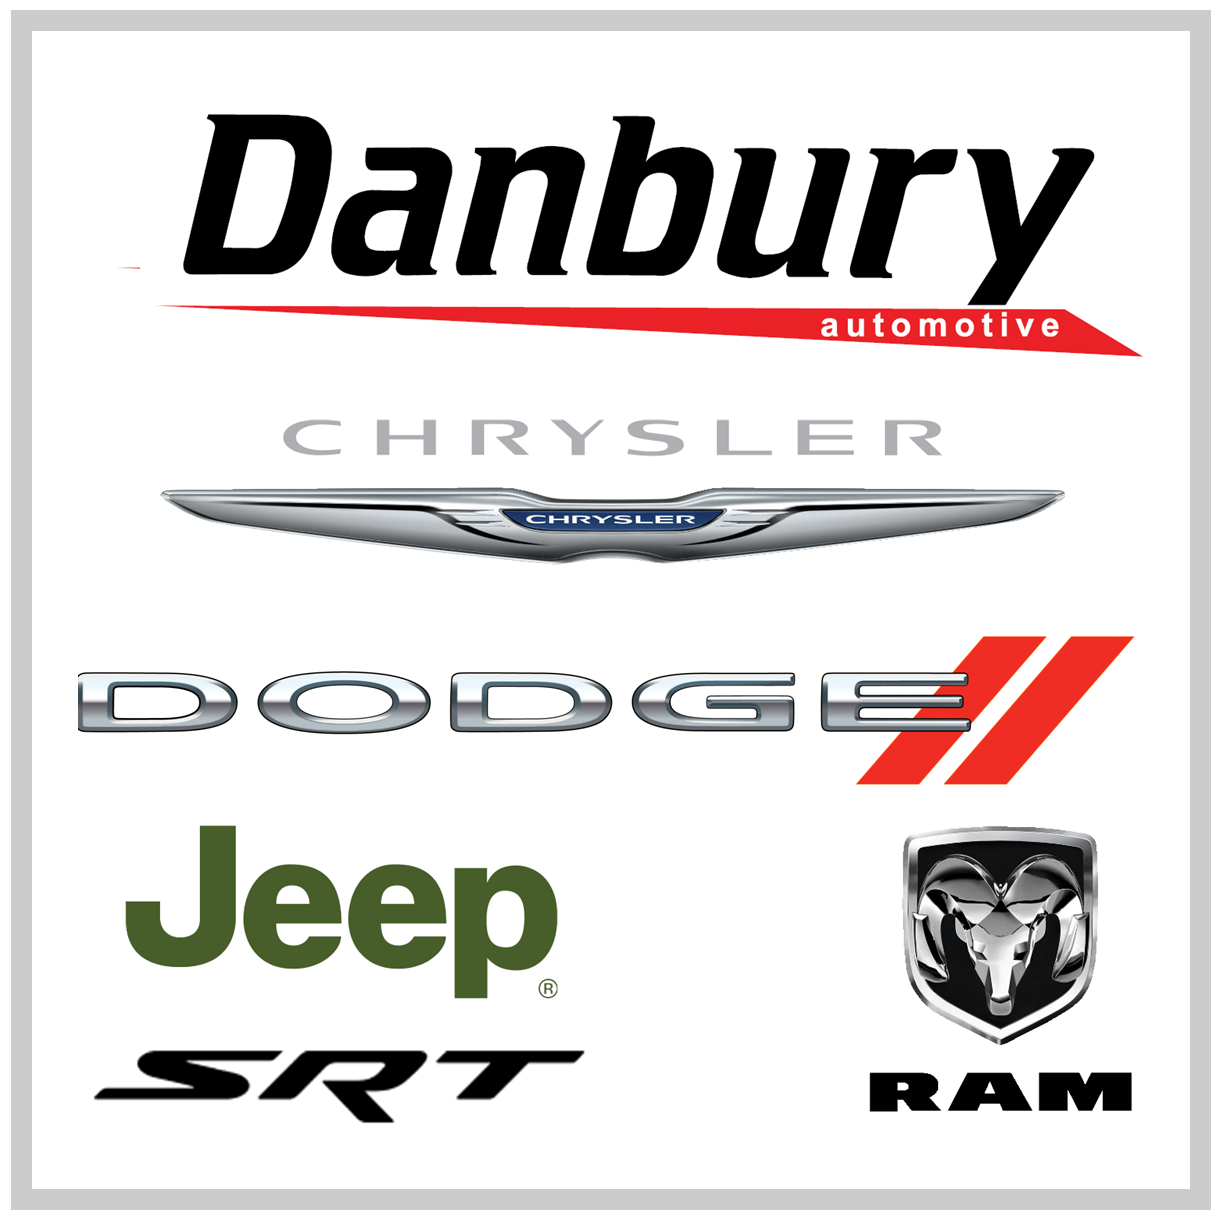 Danbury chrysler jeep dodge presents free oil changes for the life disclaimer offer valid for new chrysler biocorpaavc Choice Image